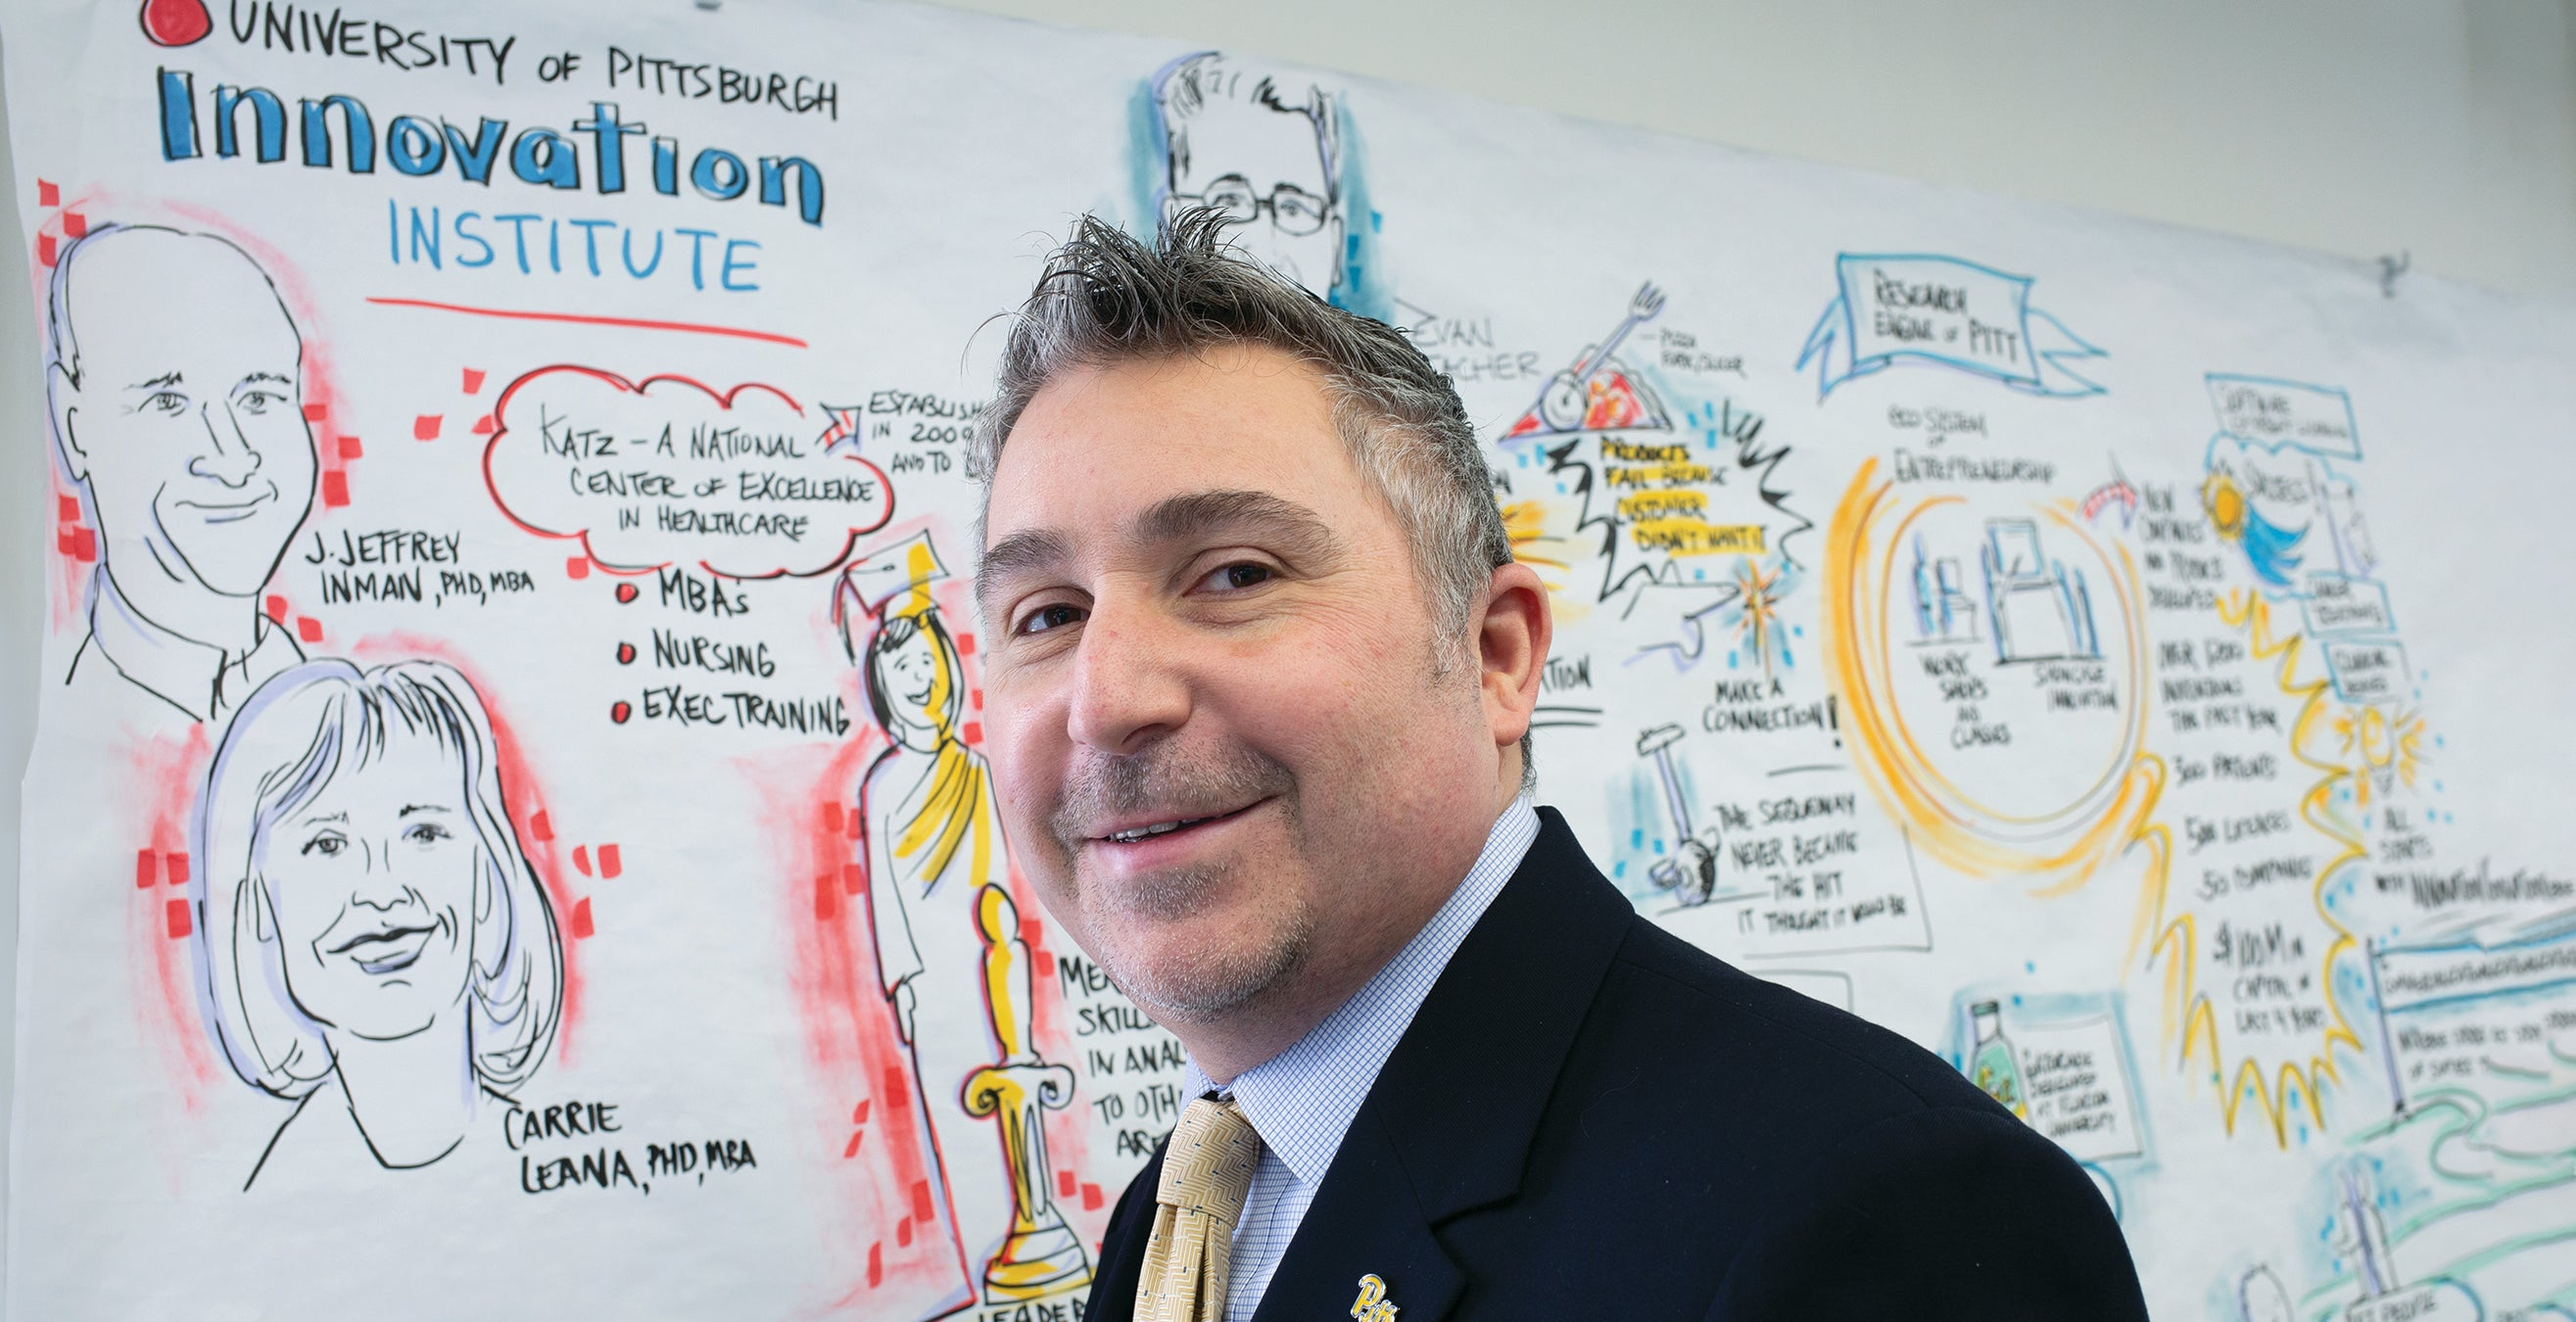 Evan Facher in front of colorful, cartoonish drawing of colleagues at the Innovation Institute.